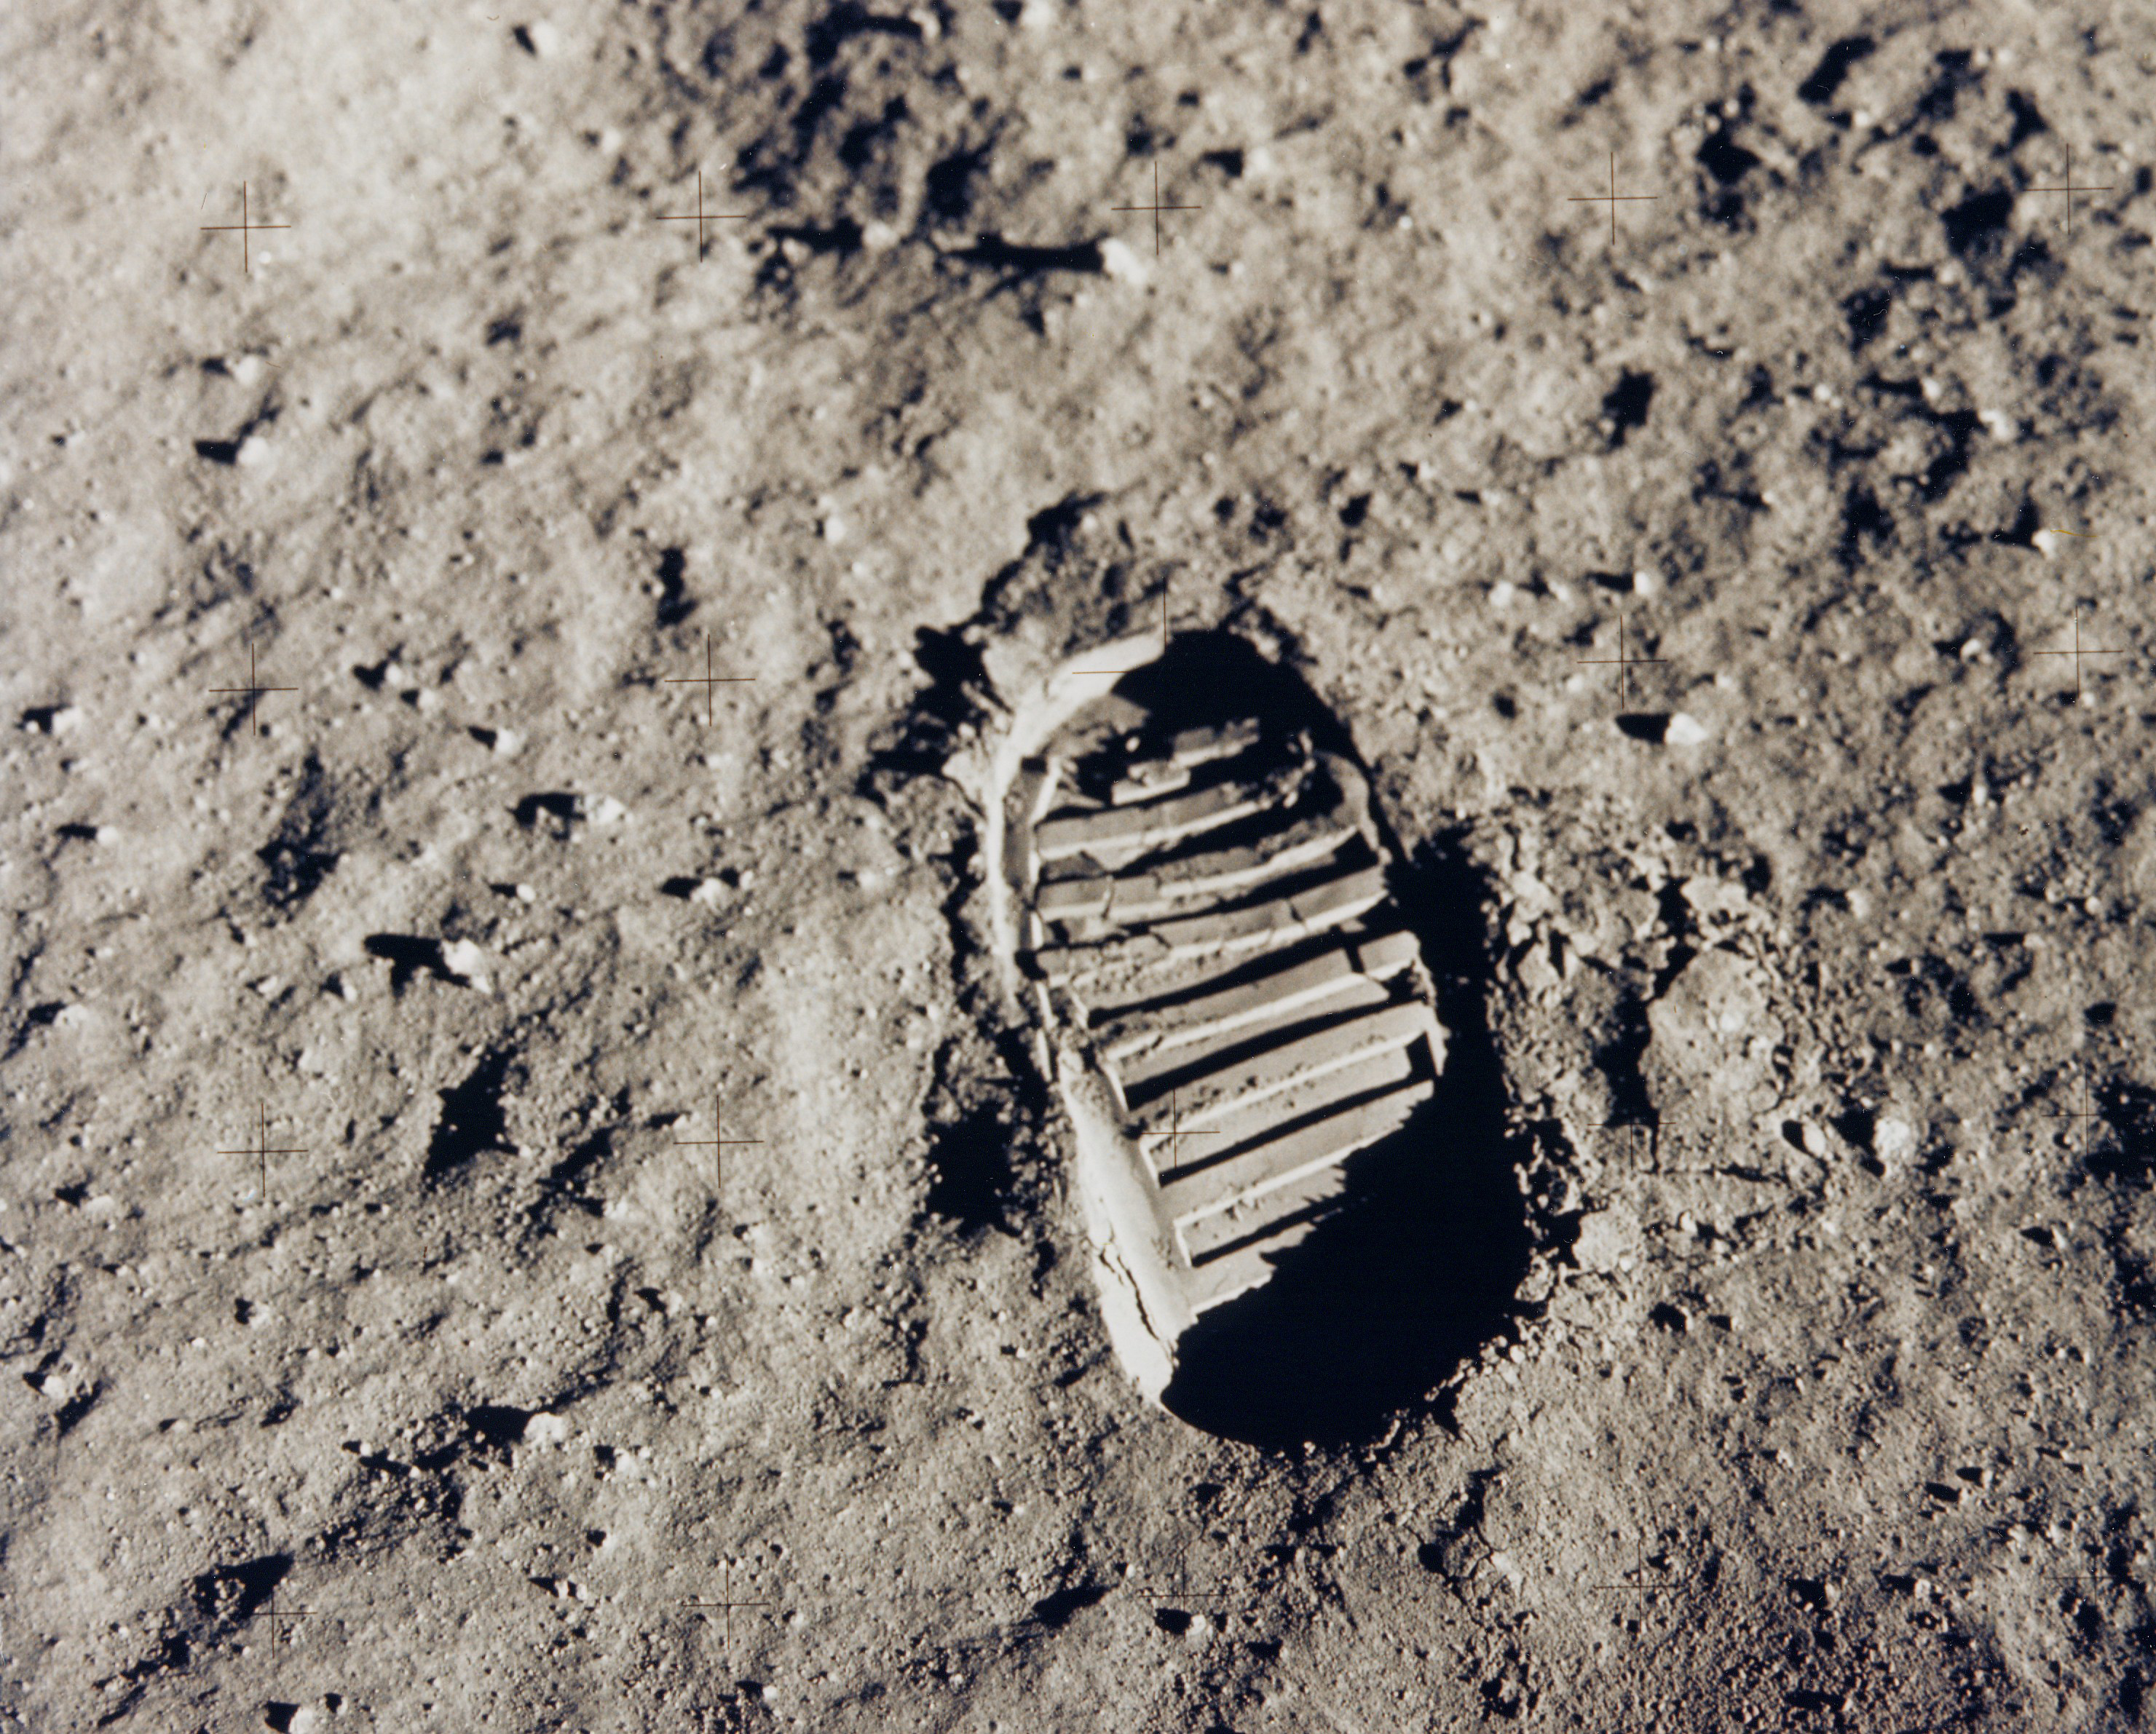 This bootprint marks one of the first steps human beings took on the moon in July 1969.